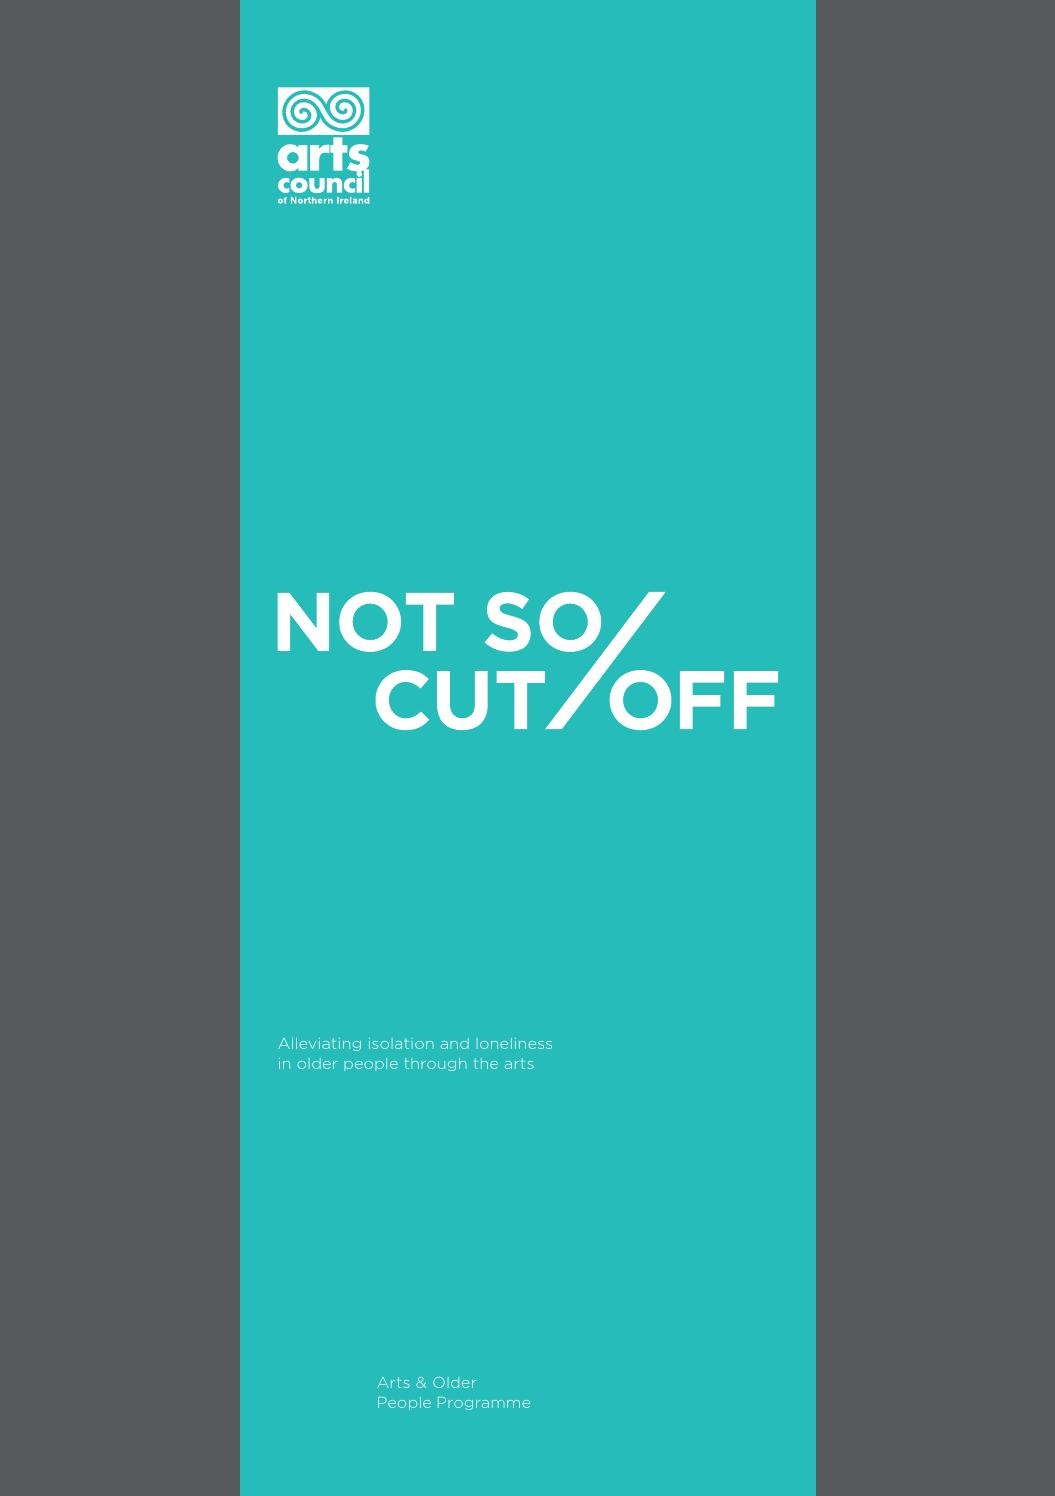 Not So Cut/Off cover